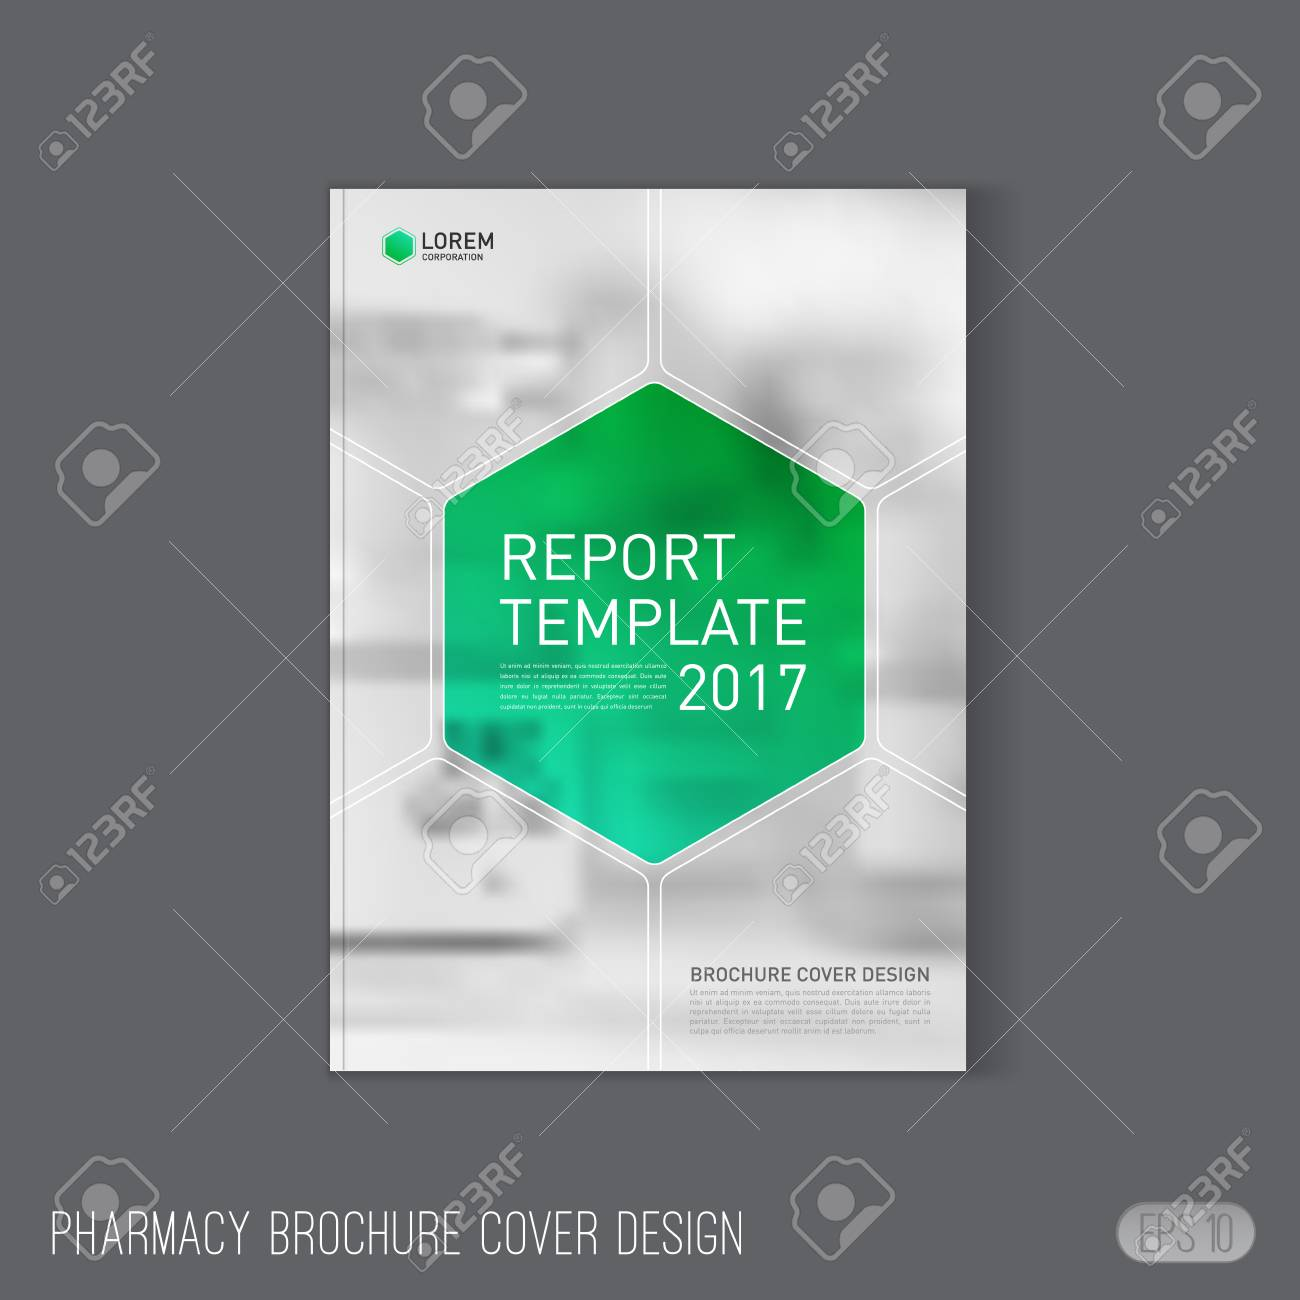 Pharmaceutical Brochure Cover Template Layout Medical Brochure - Free medical brochure templates